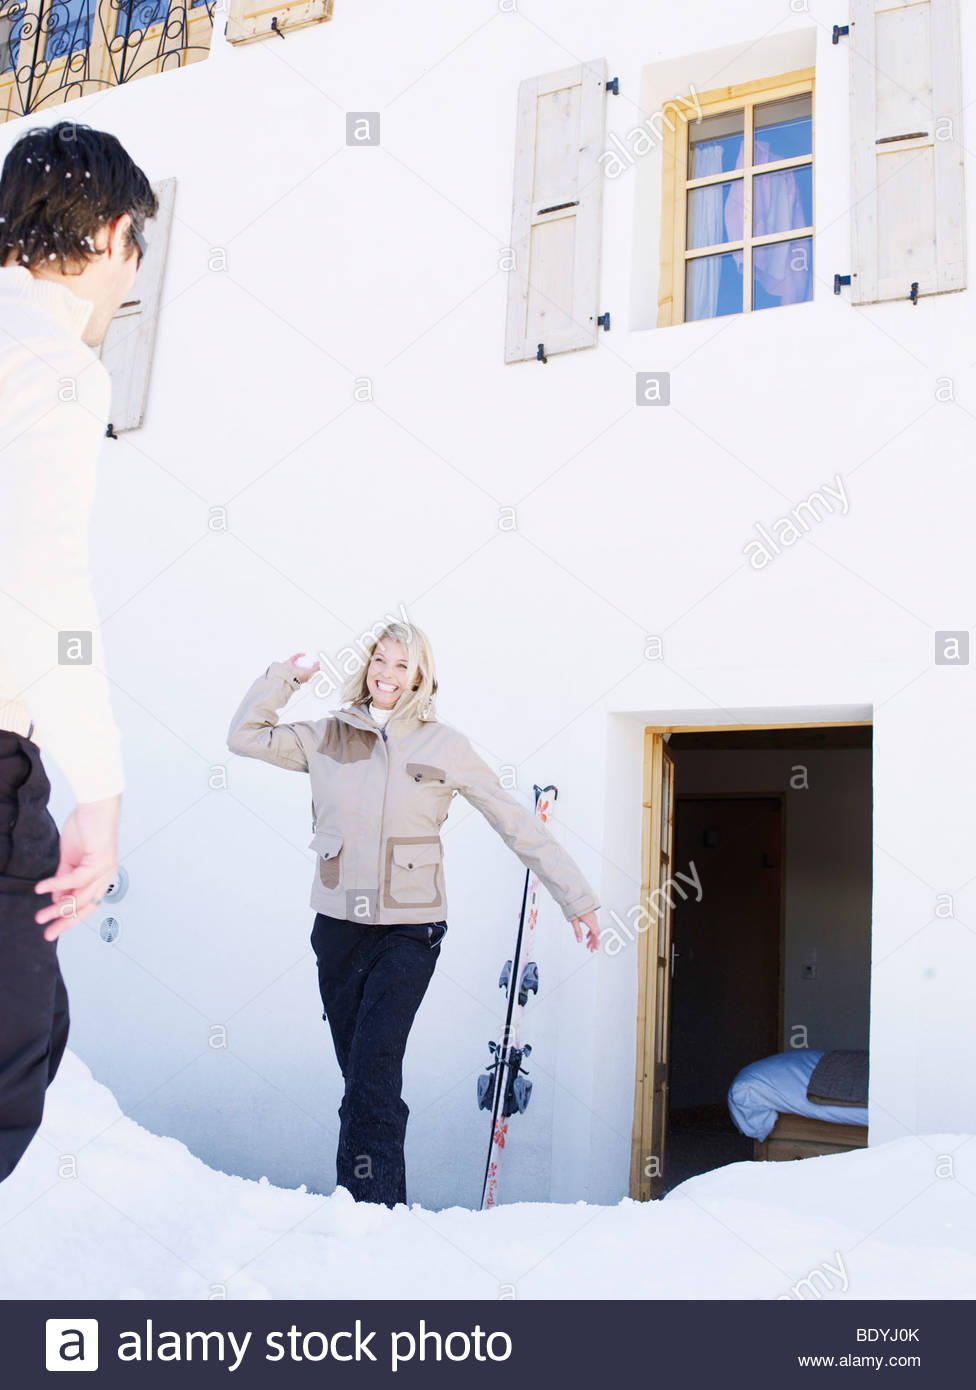 woman and man snowball fight - Stock Image